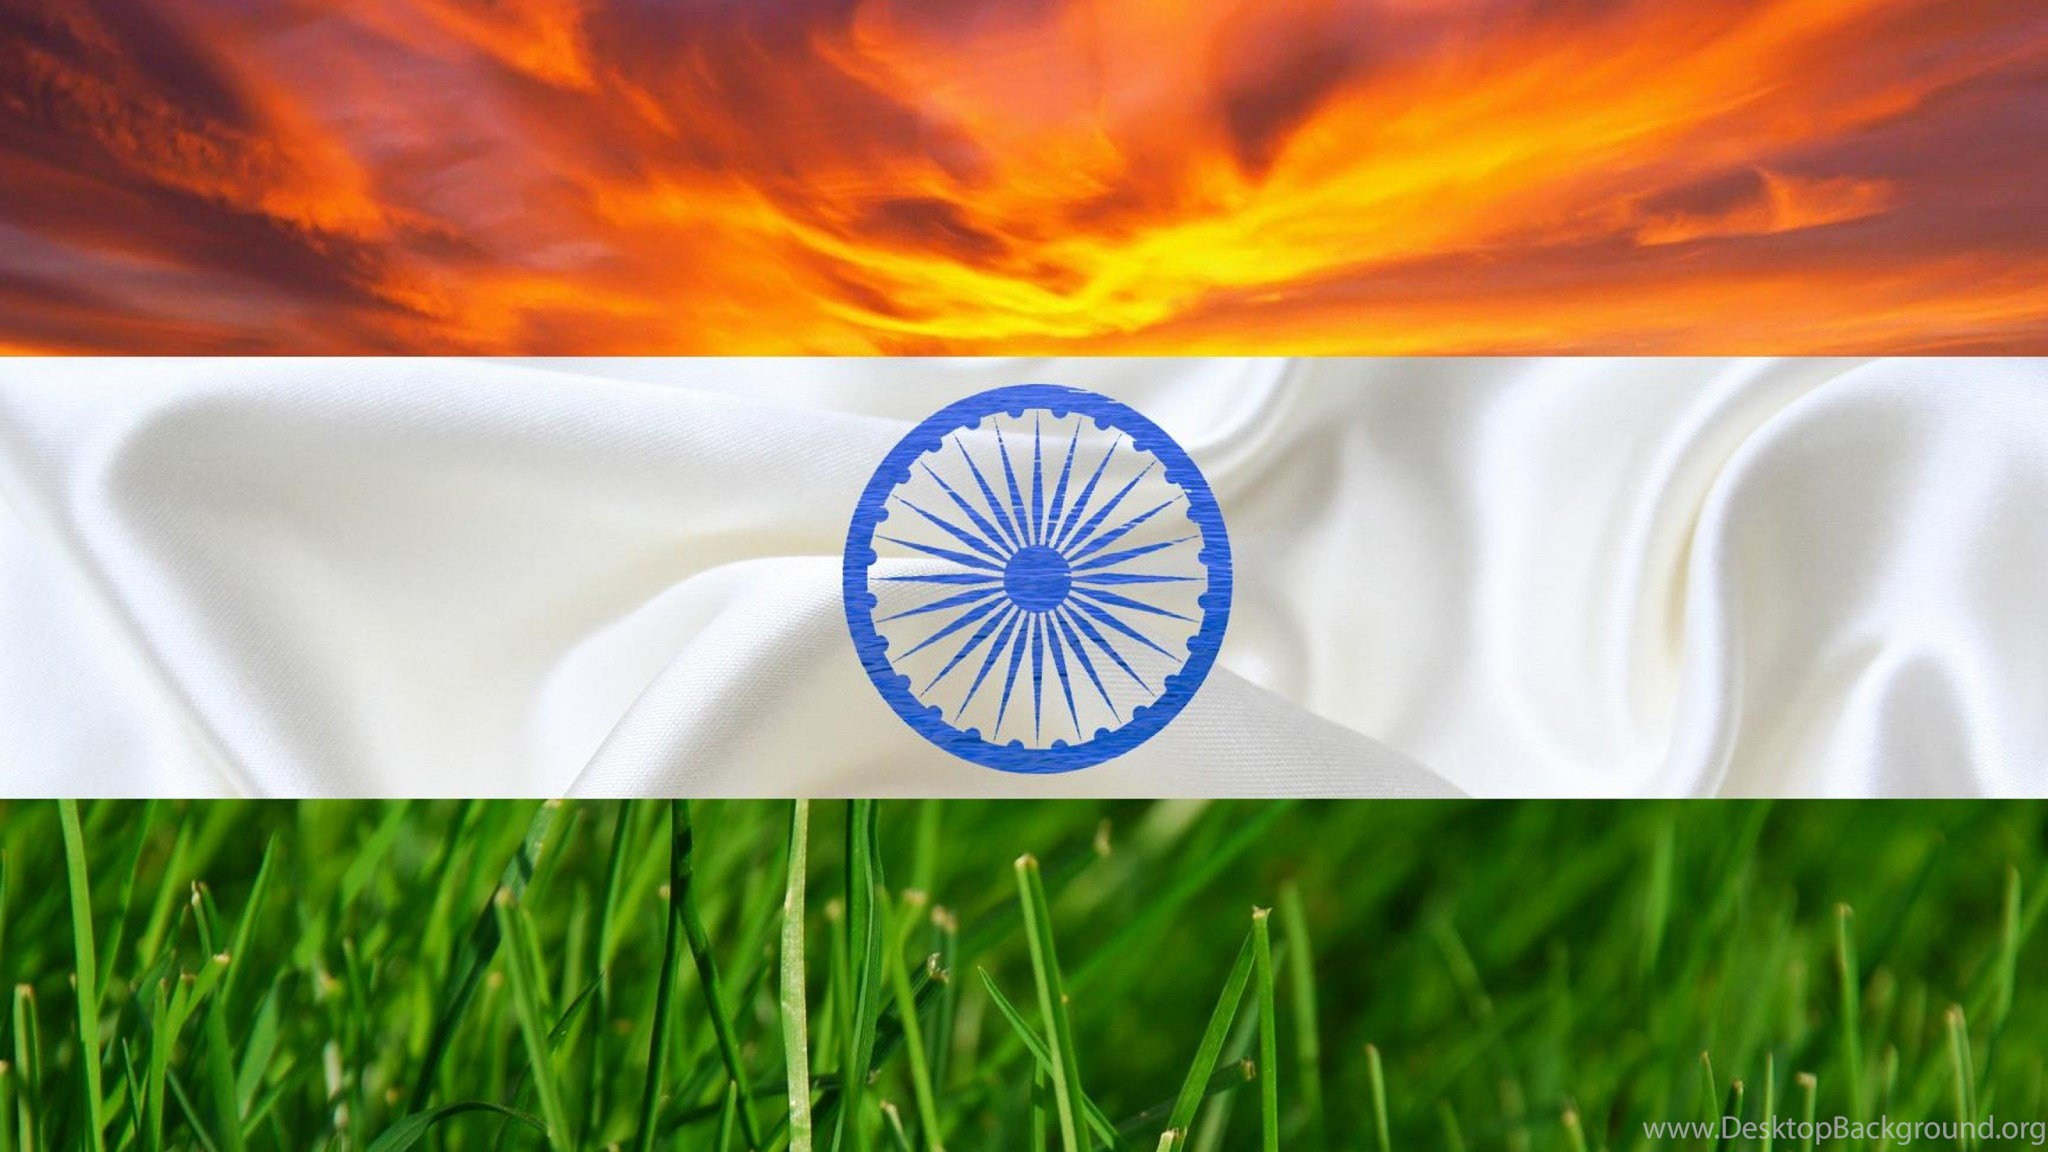 Indian Flag 4k Wallpaper: Indian Flag Wallpaper,flag HD Wallpaper,india HD